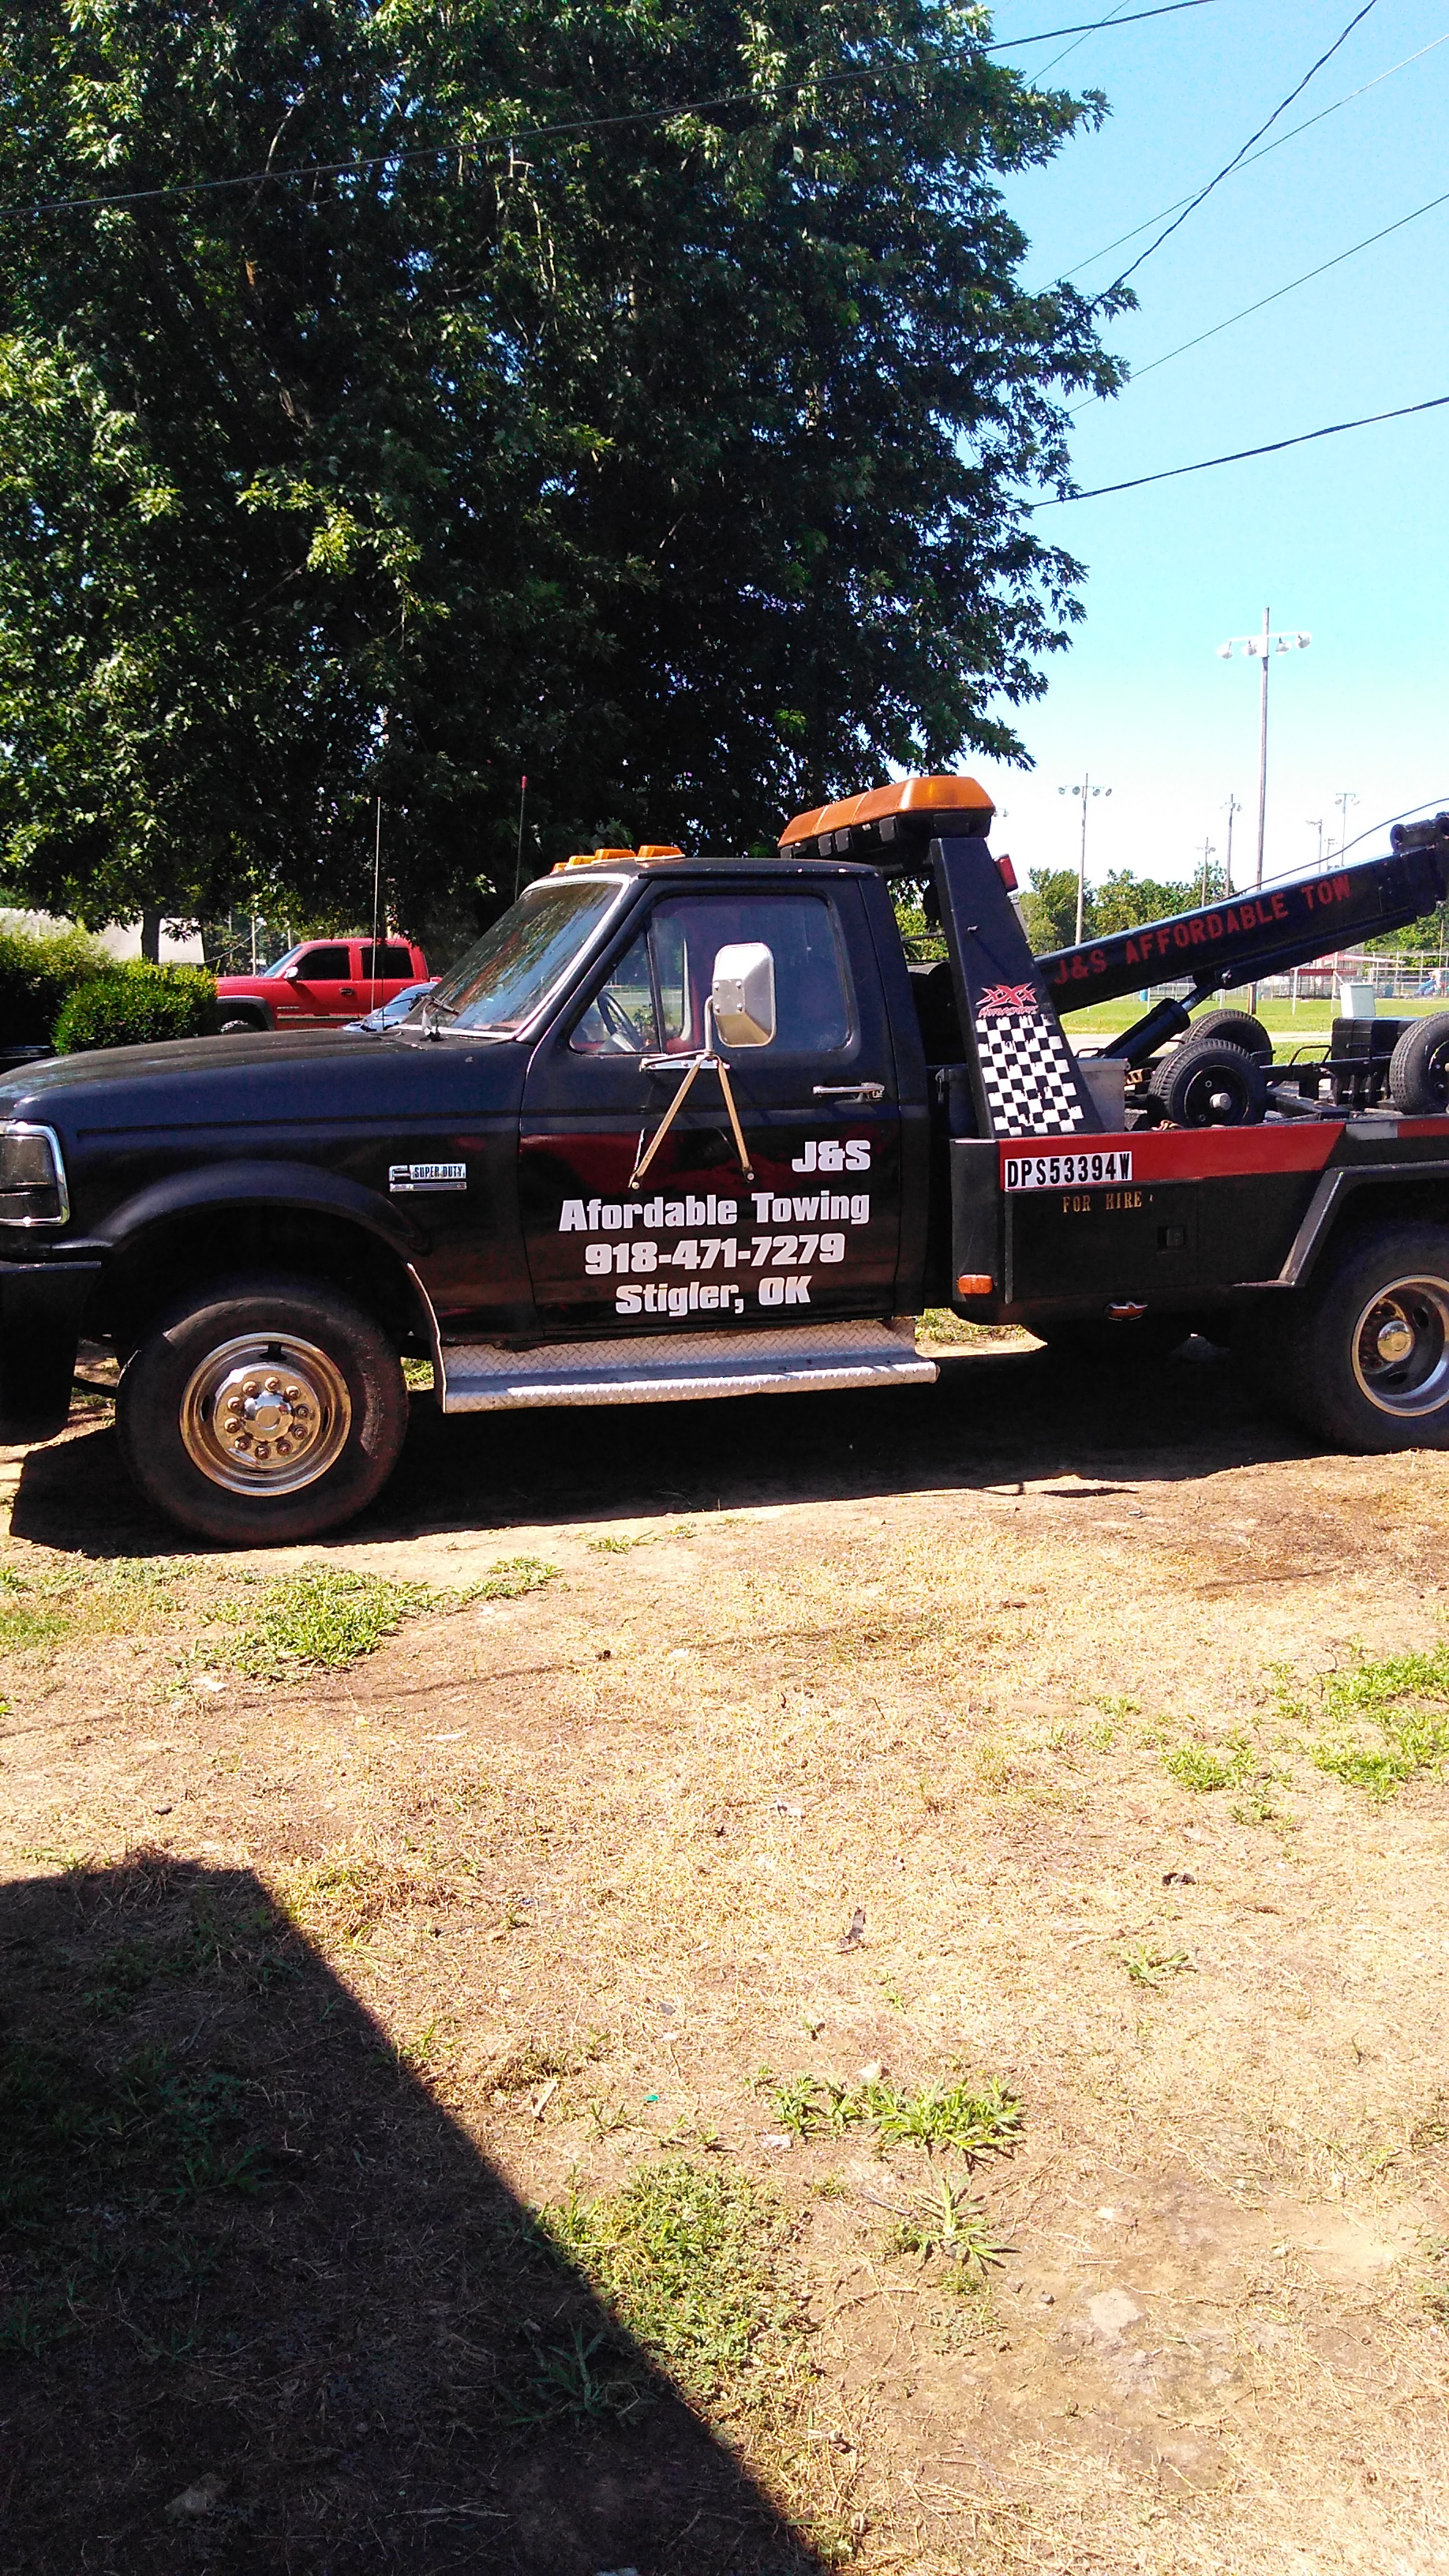 J&S Affordable Towing image 0